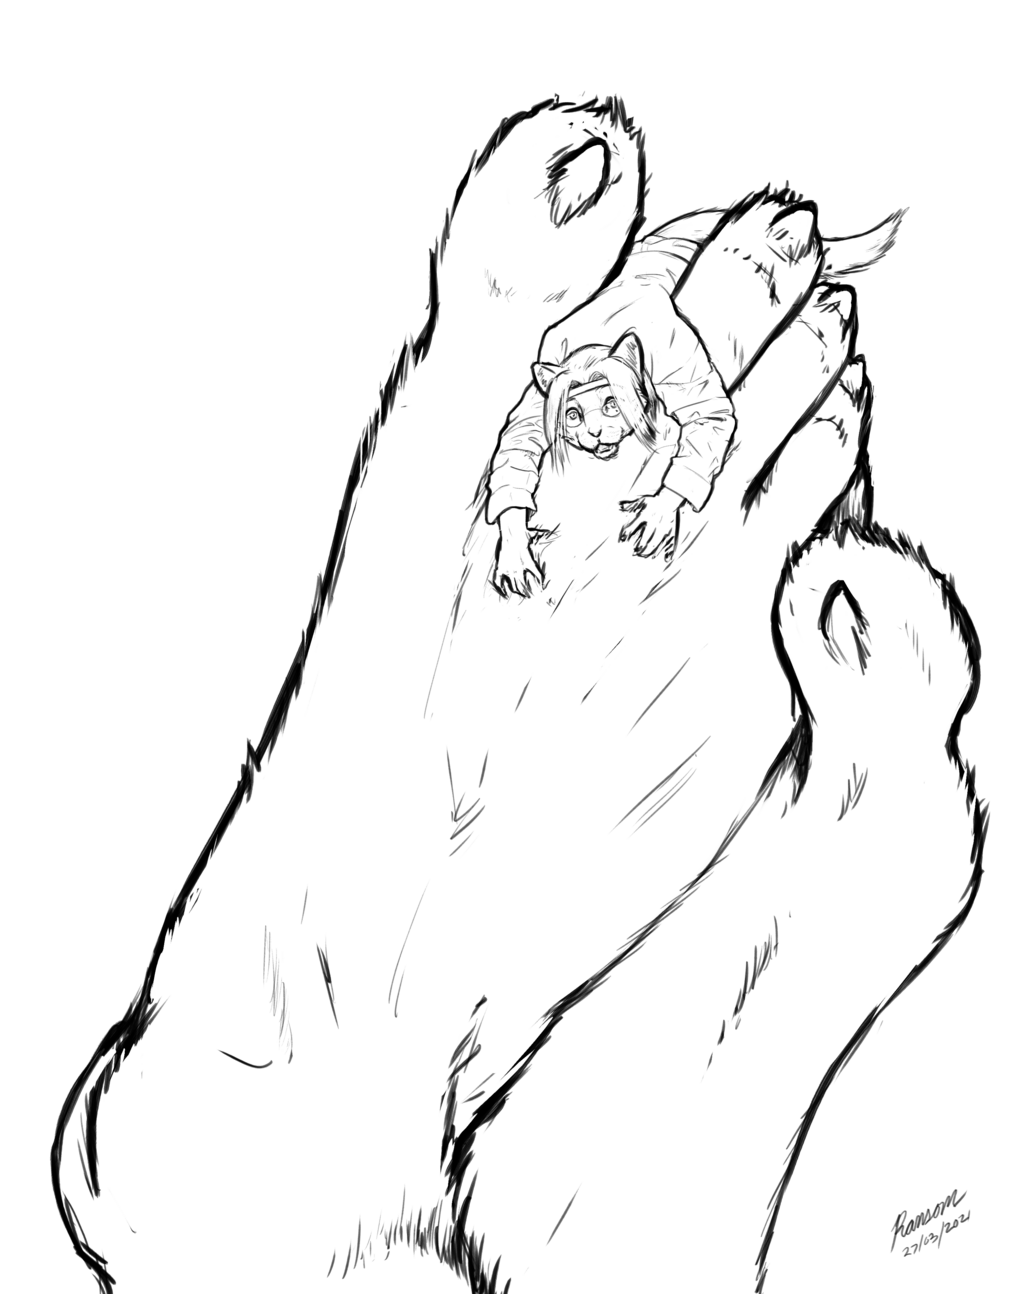 On the Right Foot